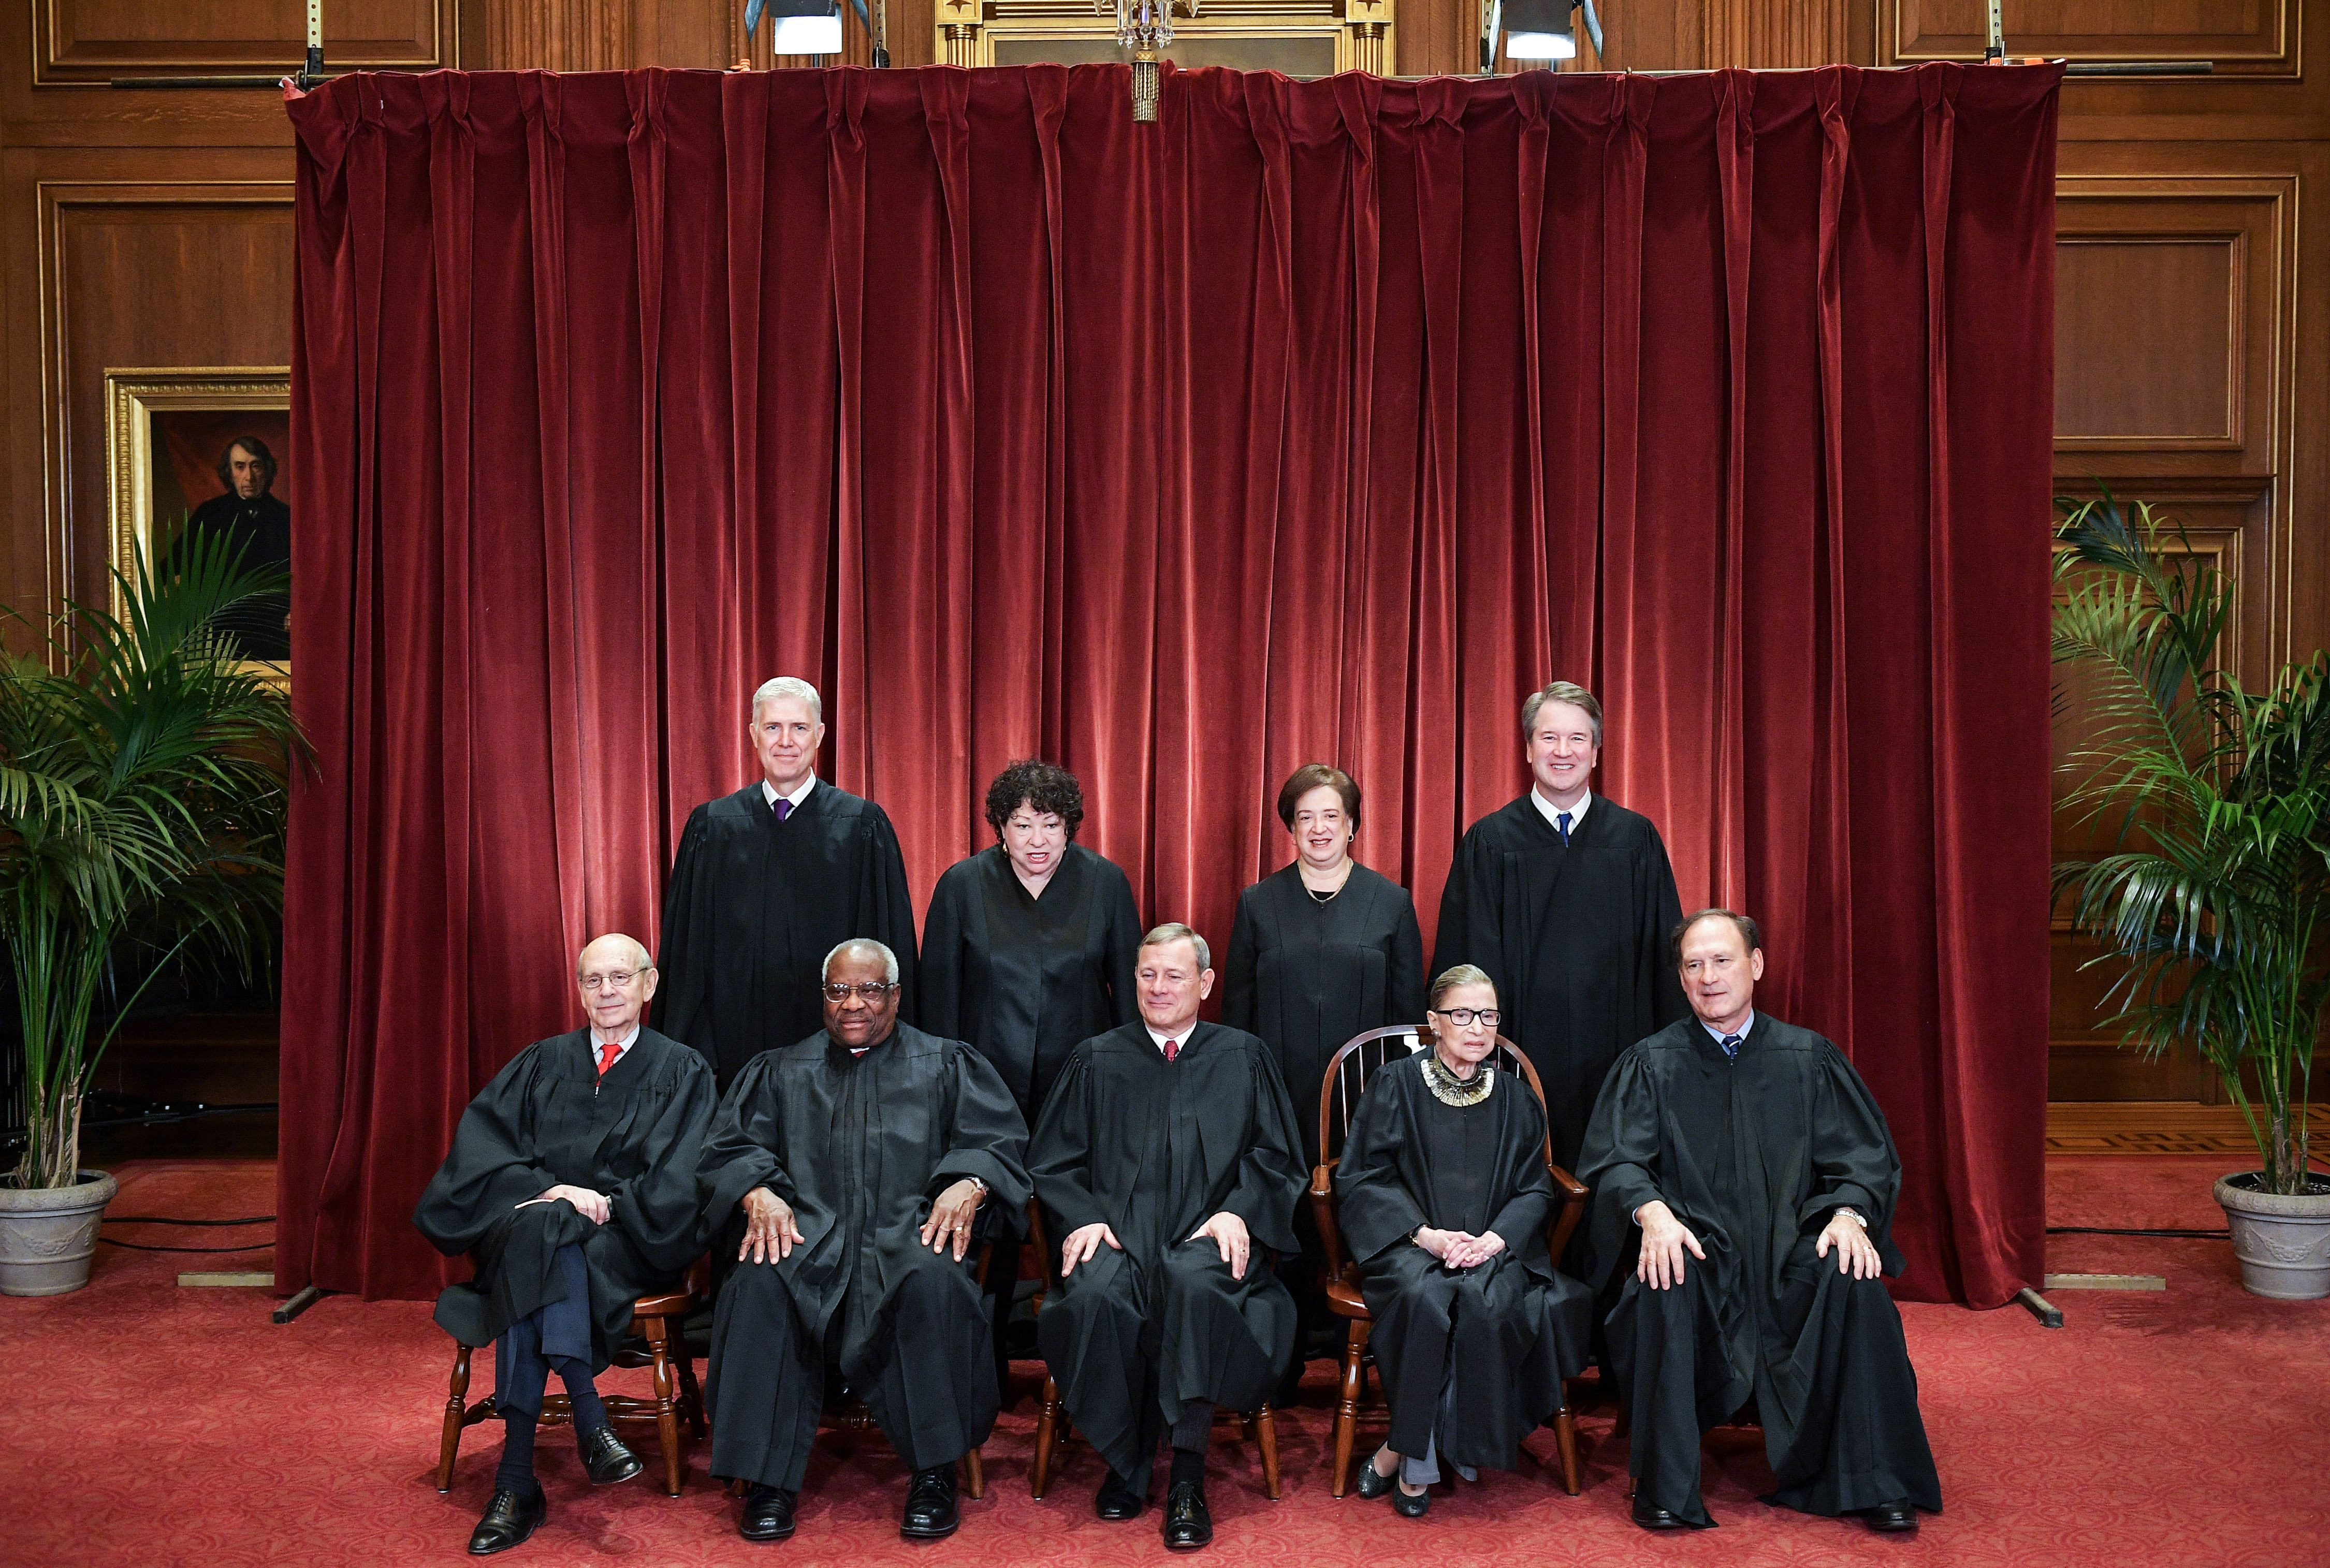 Supreme Court Justices pose for their official photo.